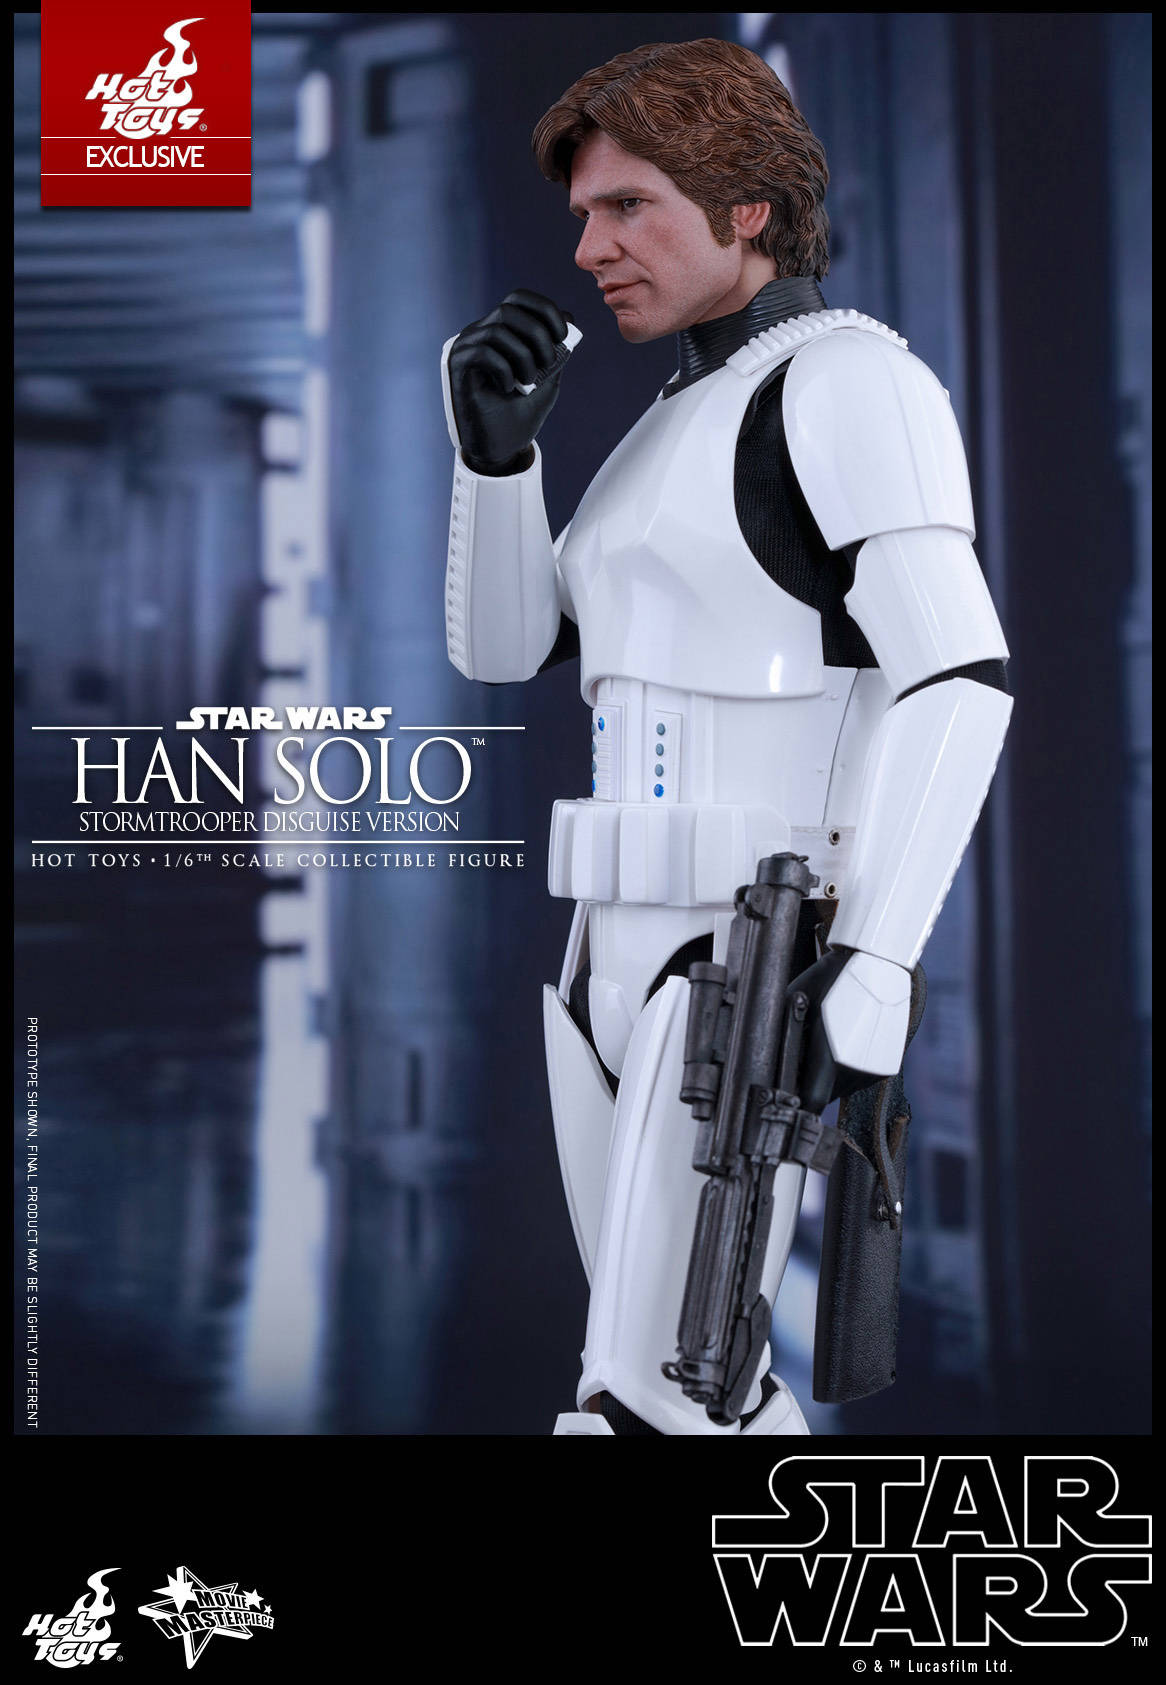 Hot-Toys---Star-Wars---Han-Solo-(Stormtrooper-Disguise-Version)-Collectible-Figure PR6